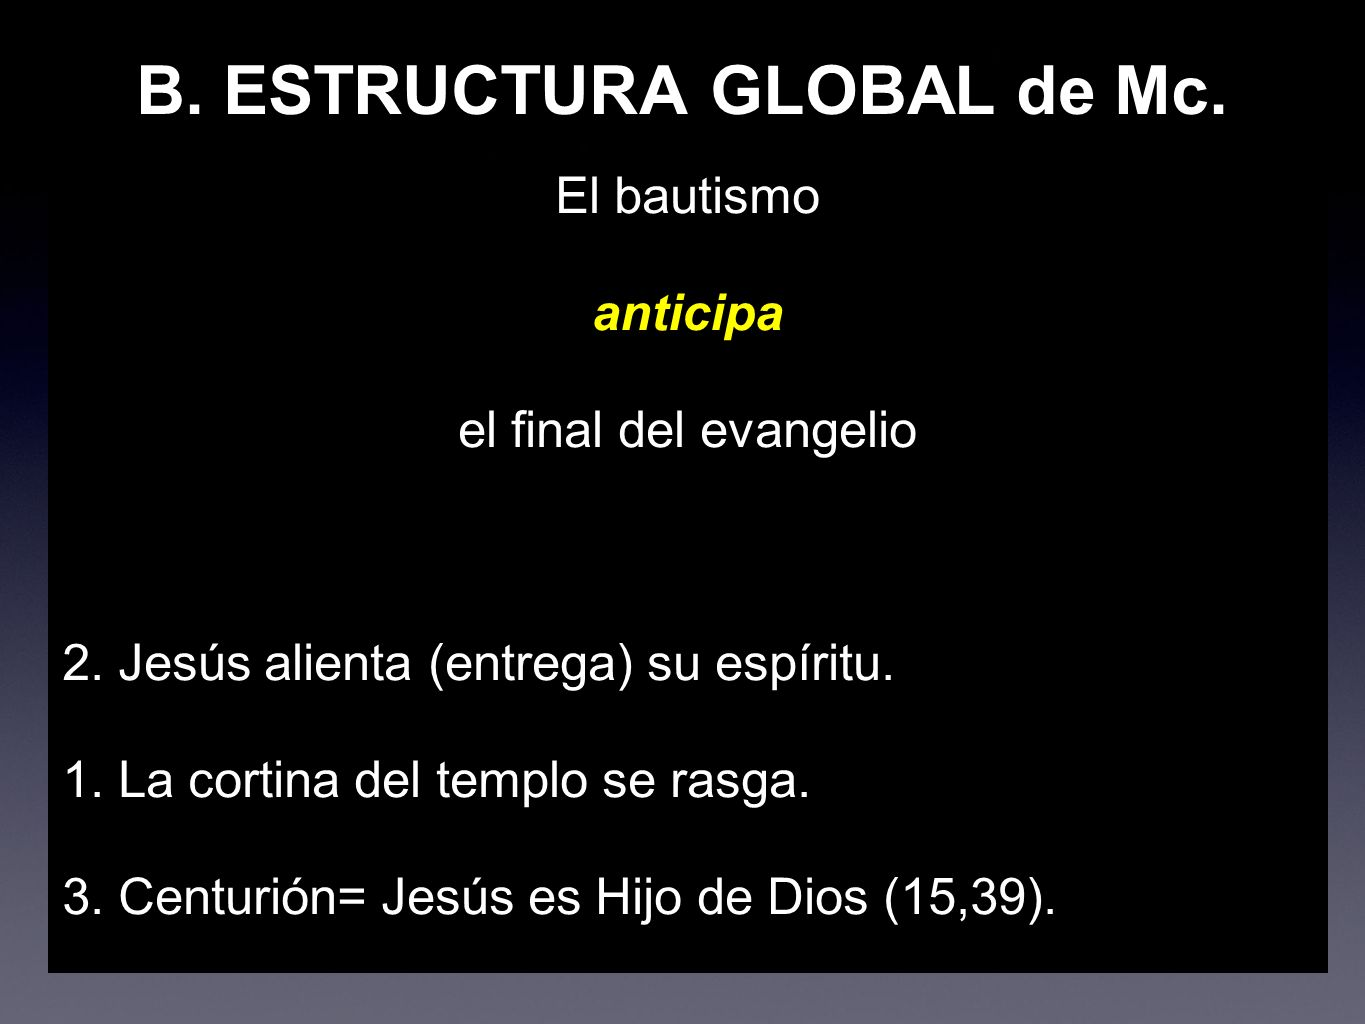 B. ESTRUCTURA GLOBAL de Mc.